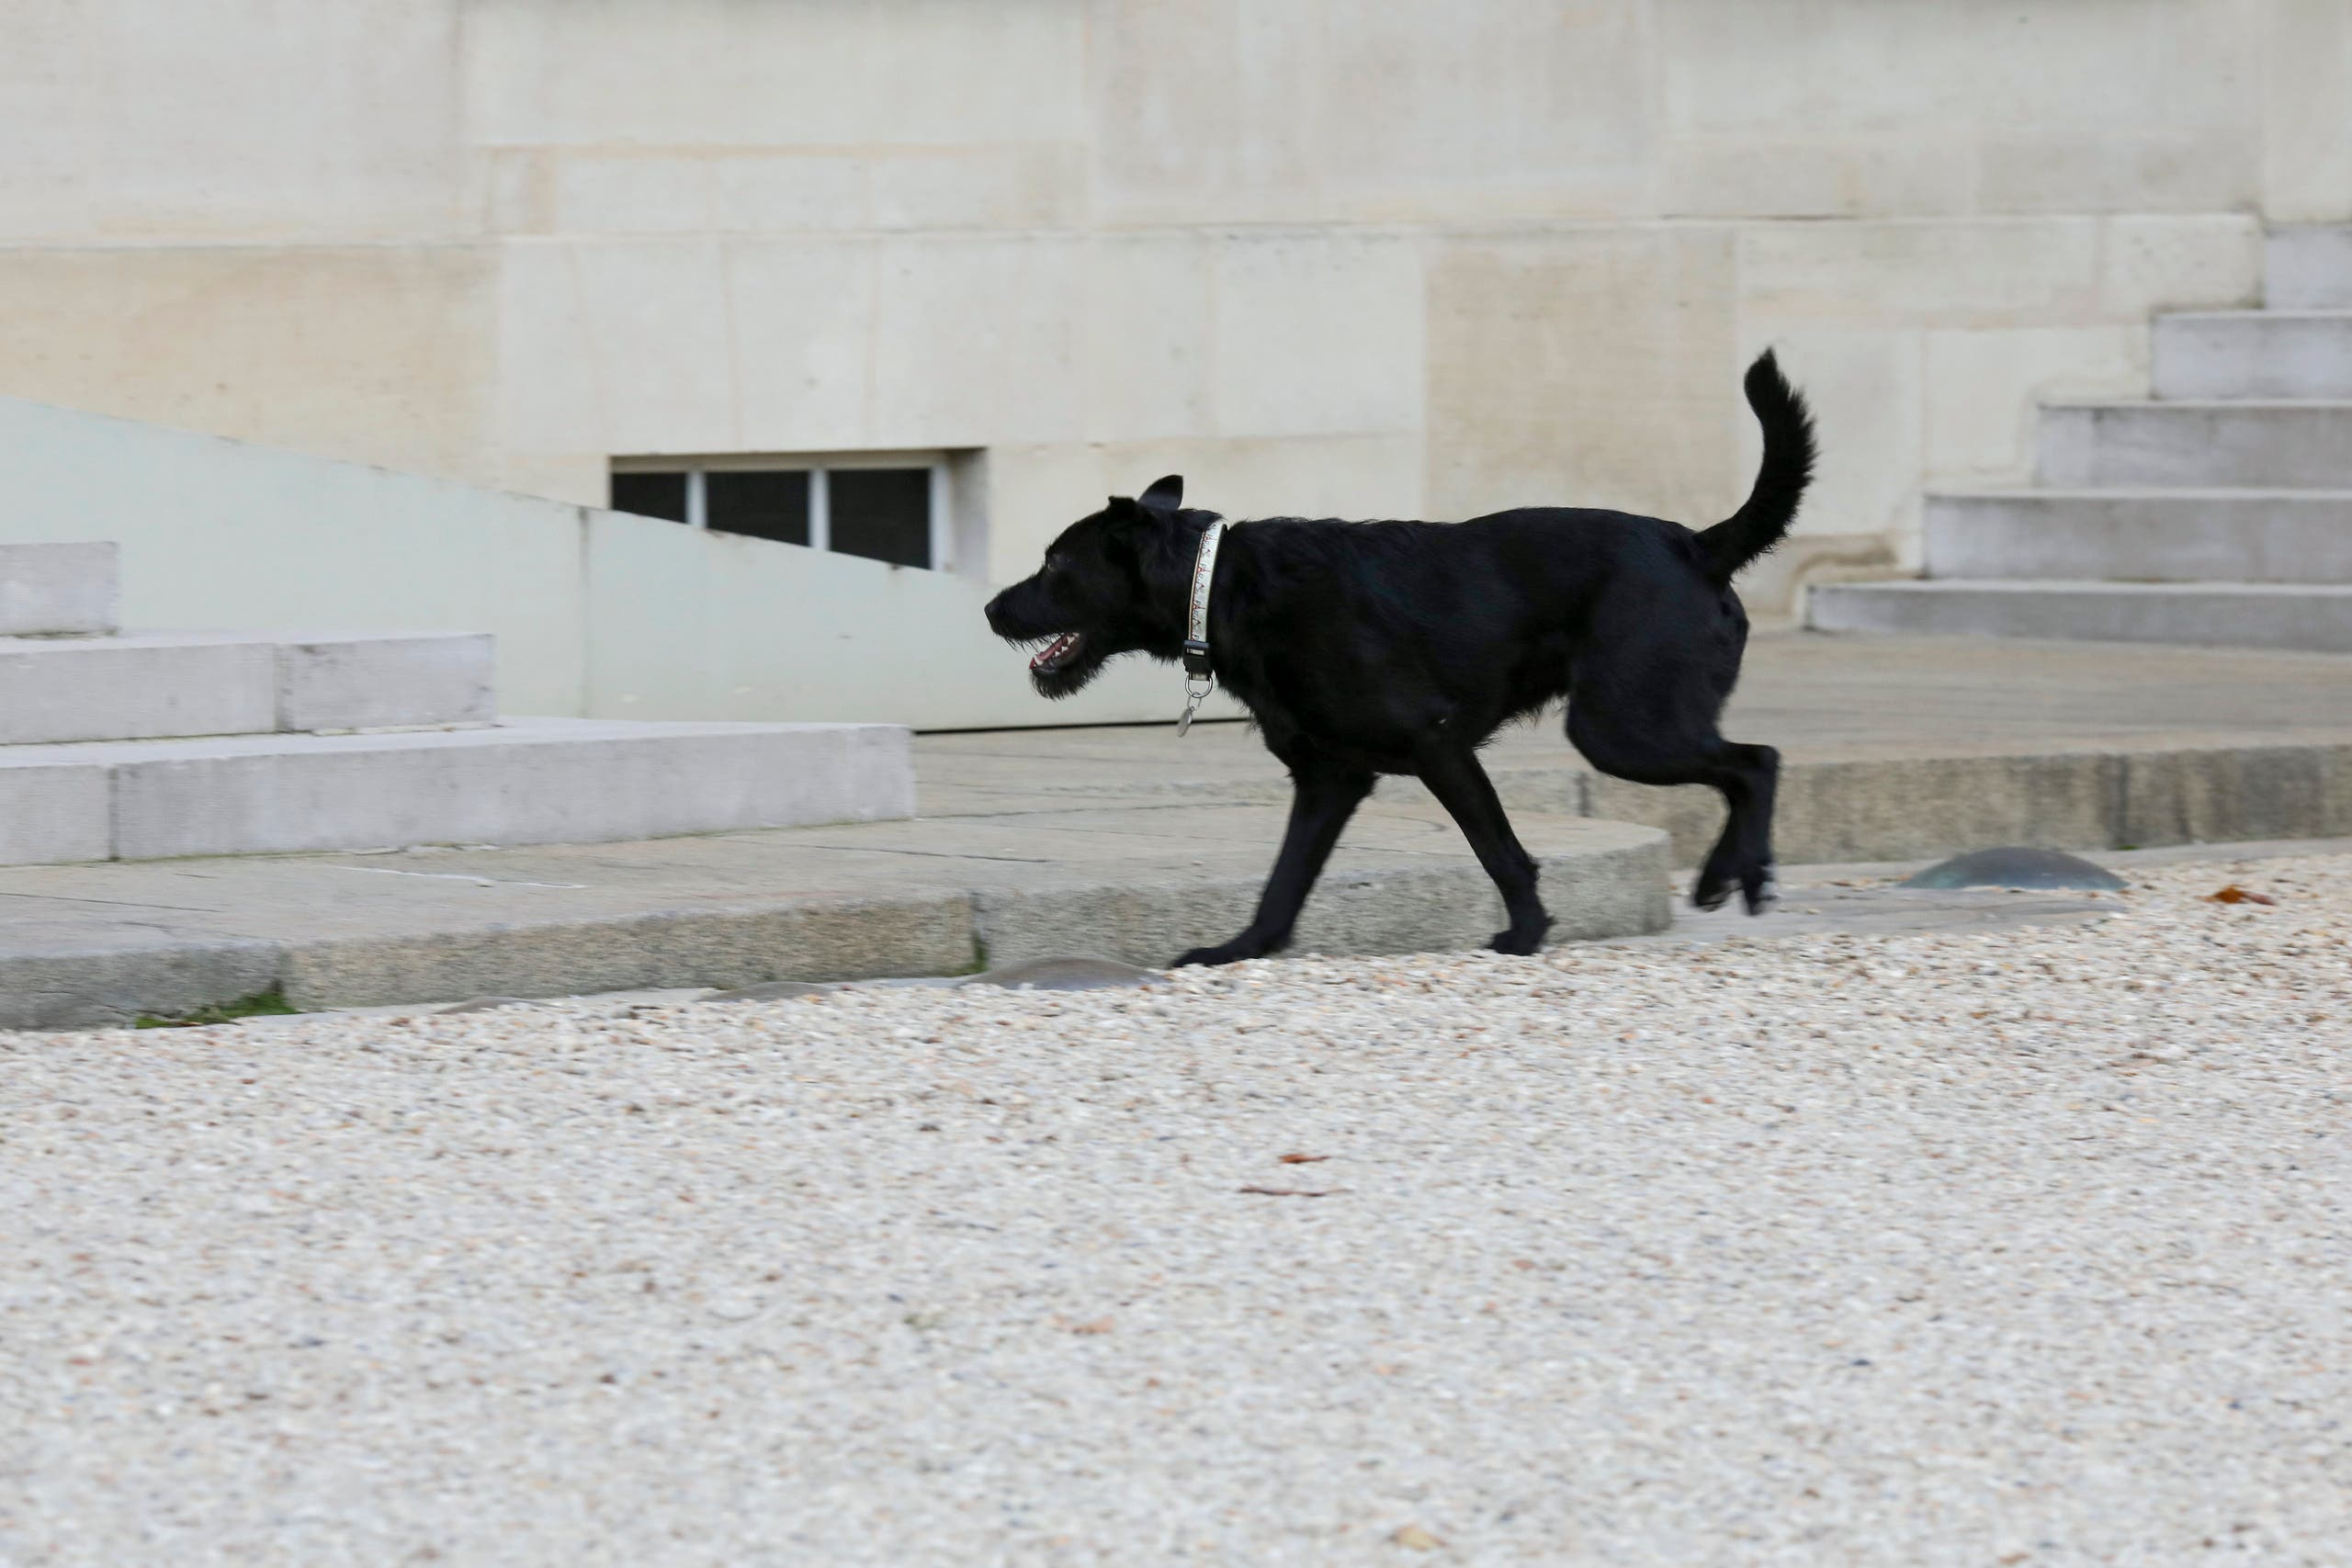 French President's dog Nemo runs at the Elysee Palace in Paris on October 12, 2017. afp